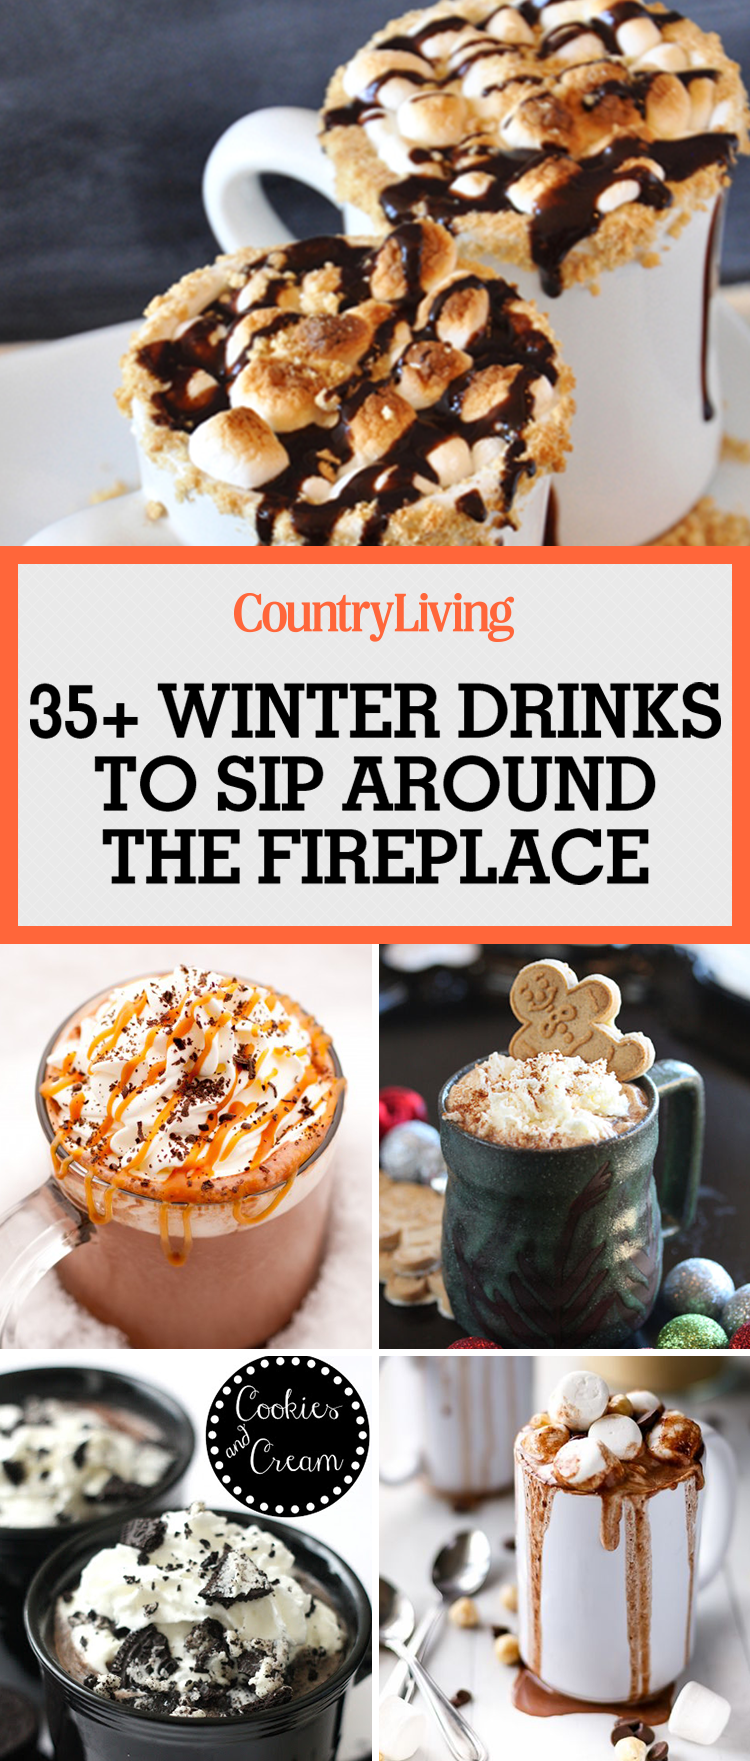 35 hot winter drinks   easy recipes for warm holiday drinks